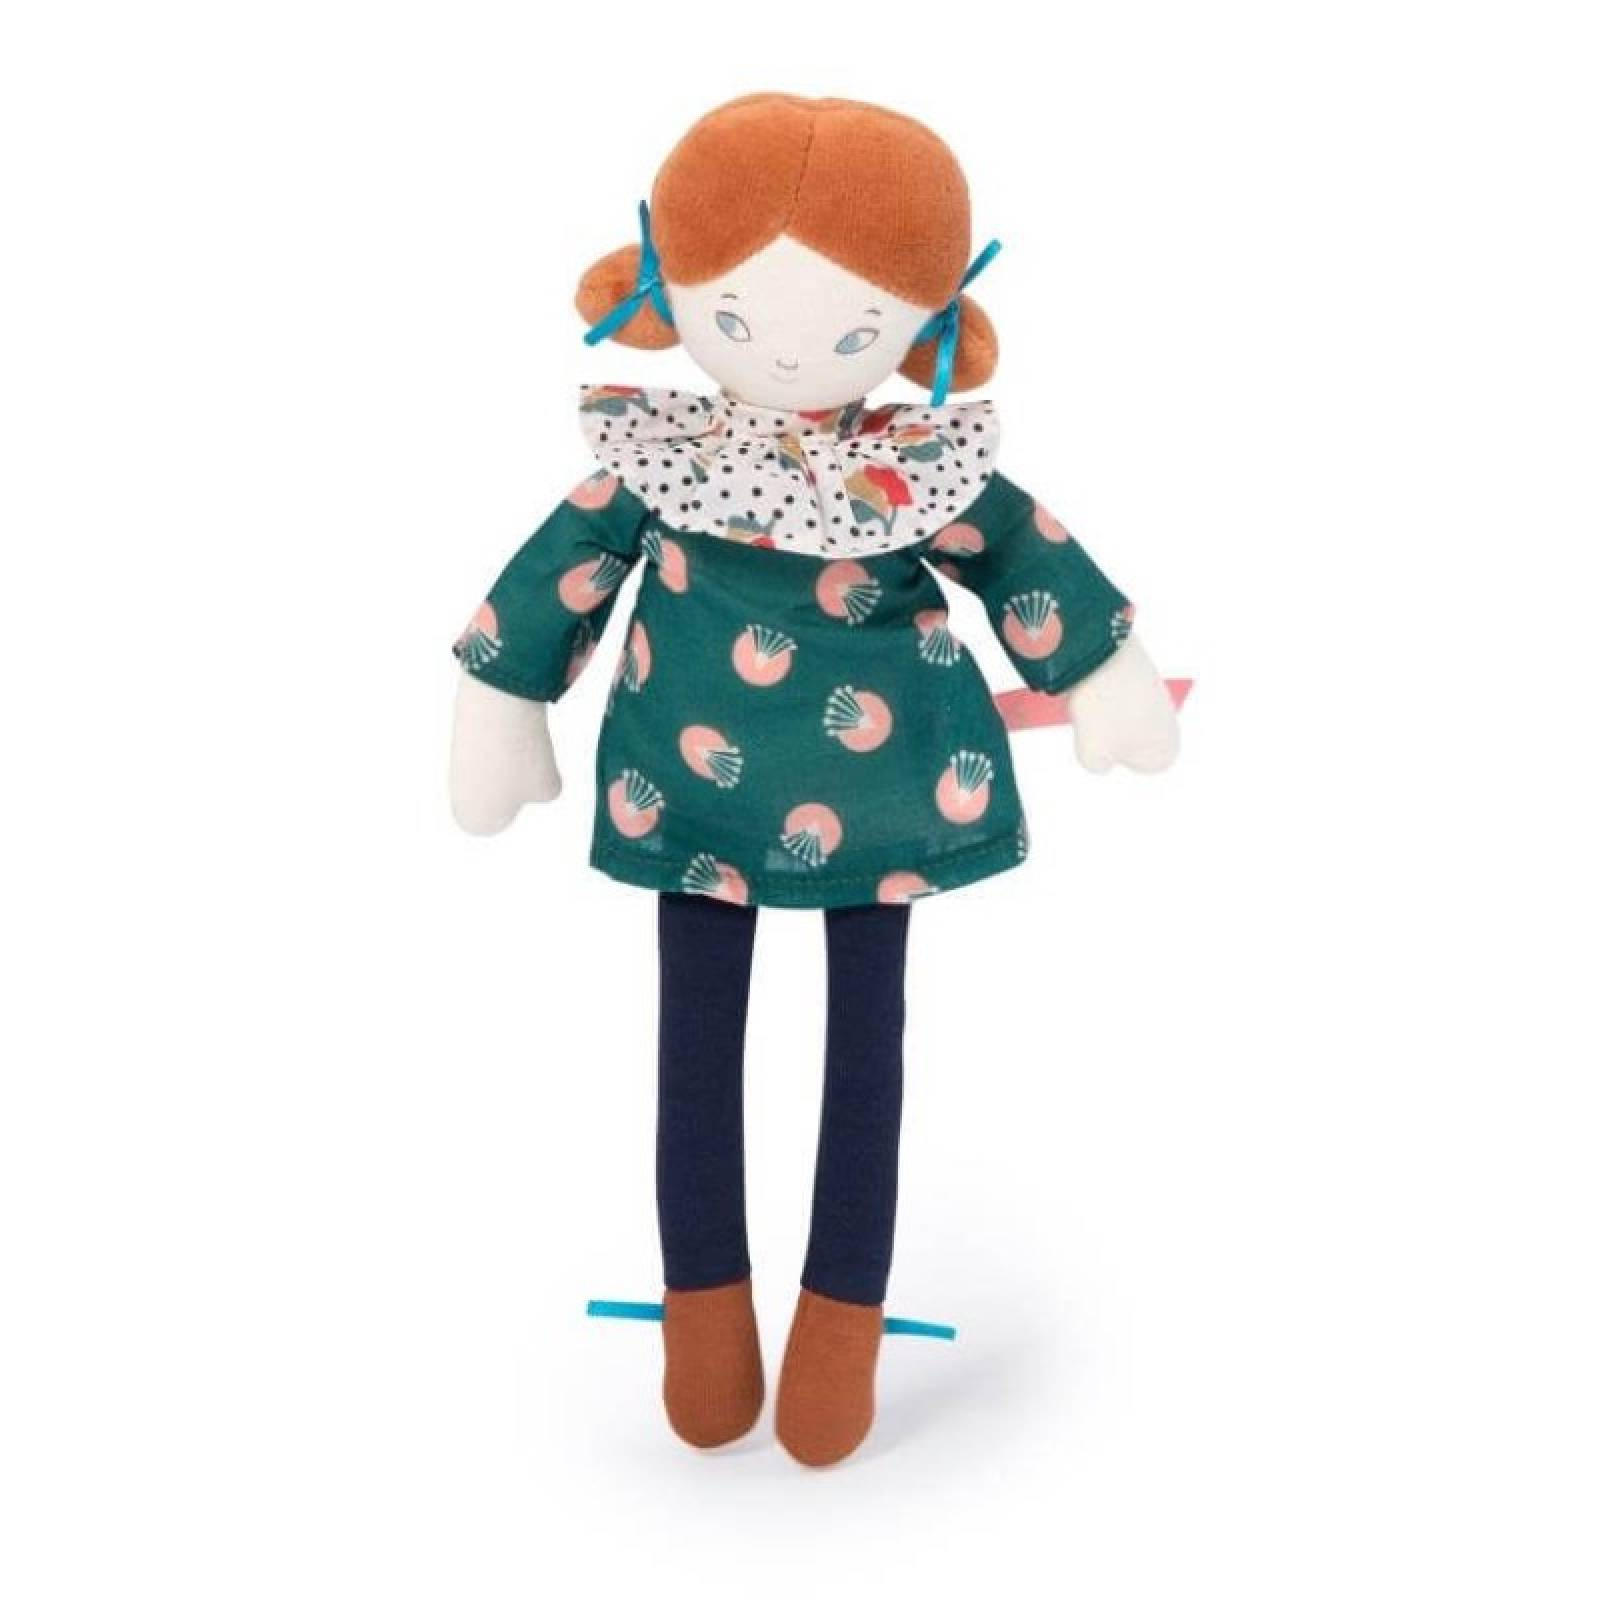 Mademoiselle Blanche Les Parisiennes Soft Toy Doll 1+